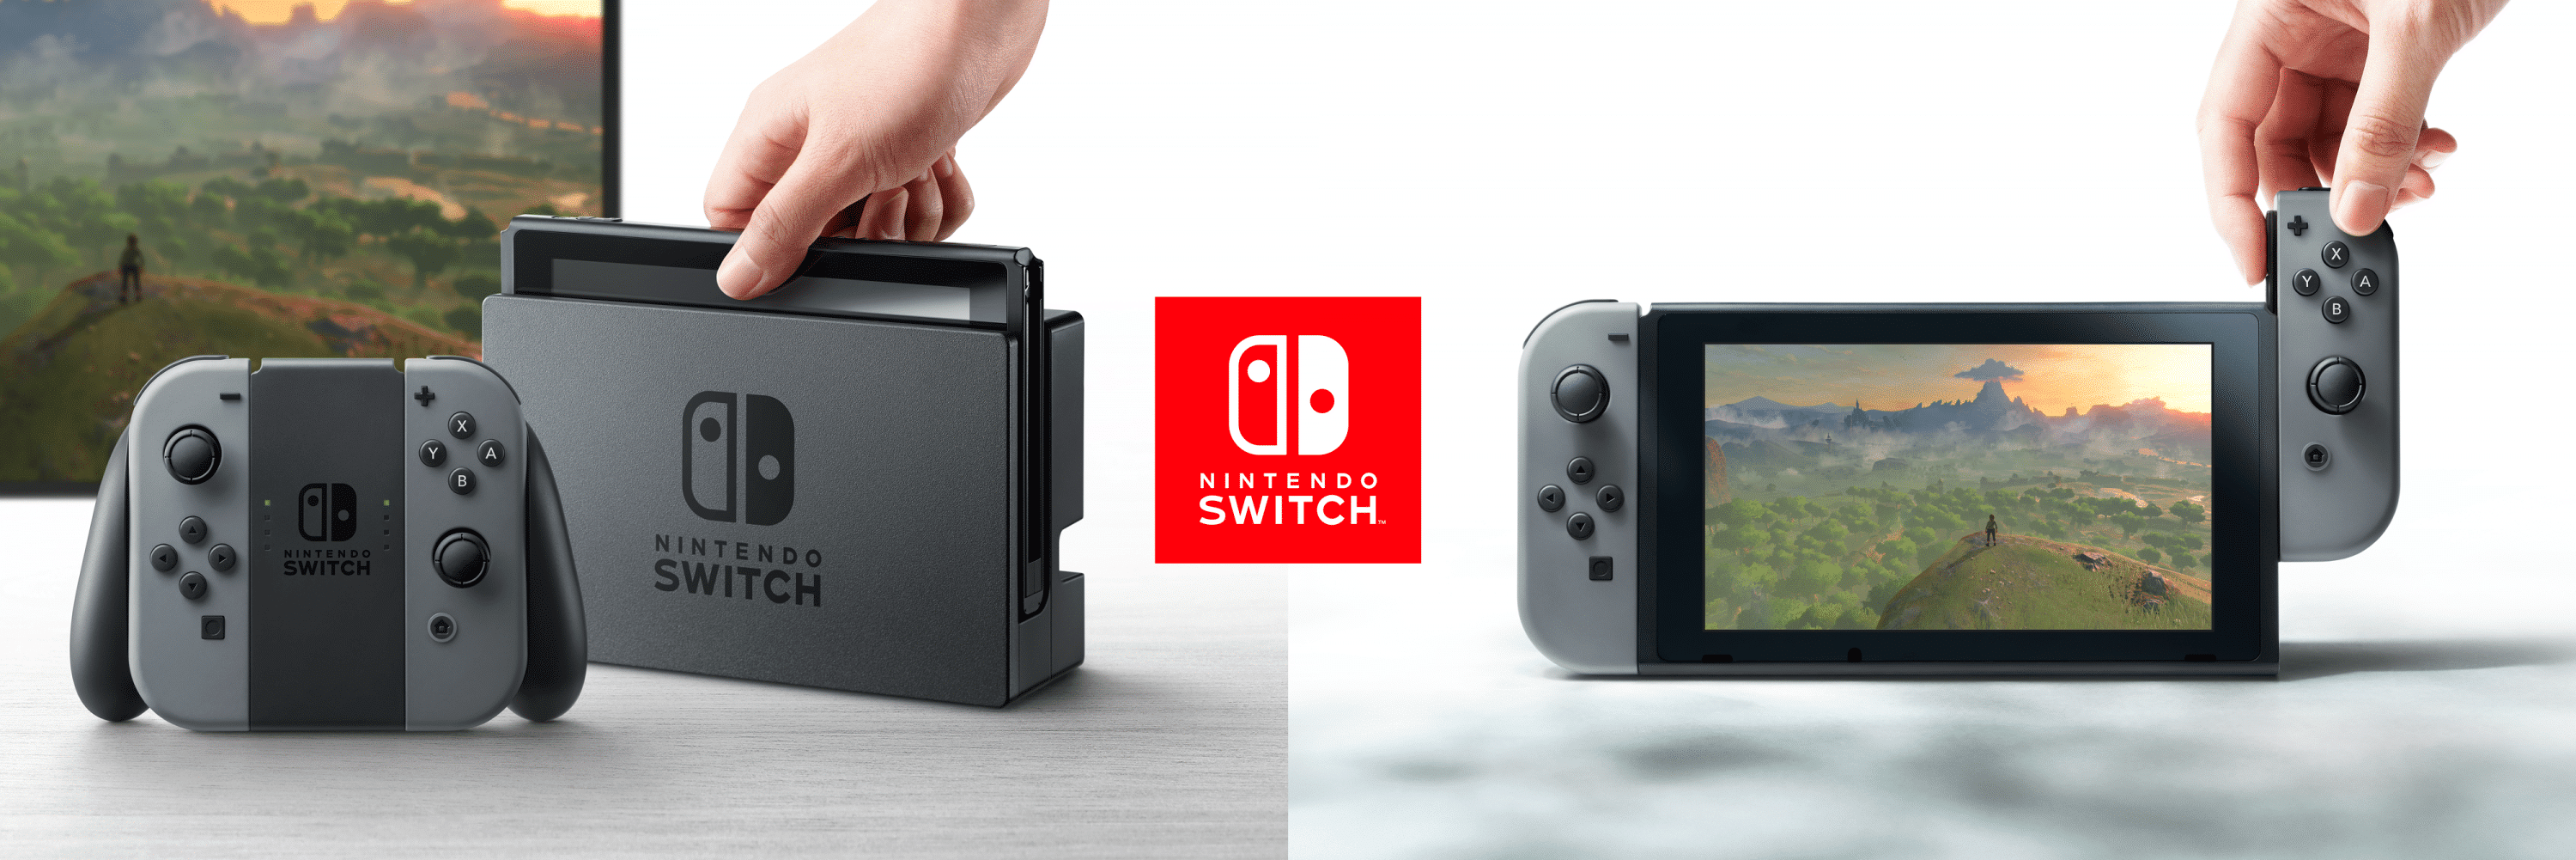 Photo of Nintendo Switch macht unterwegs Probleme beim Laden